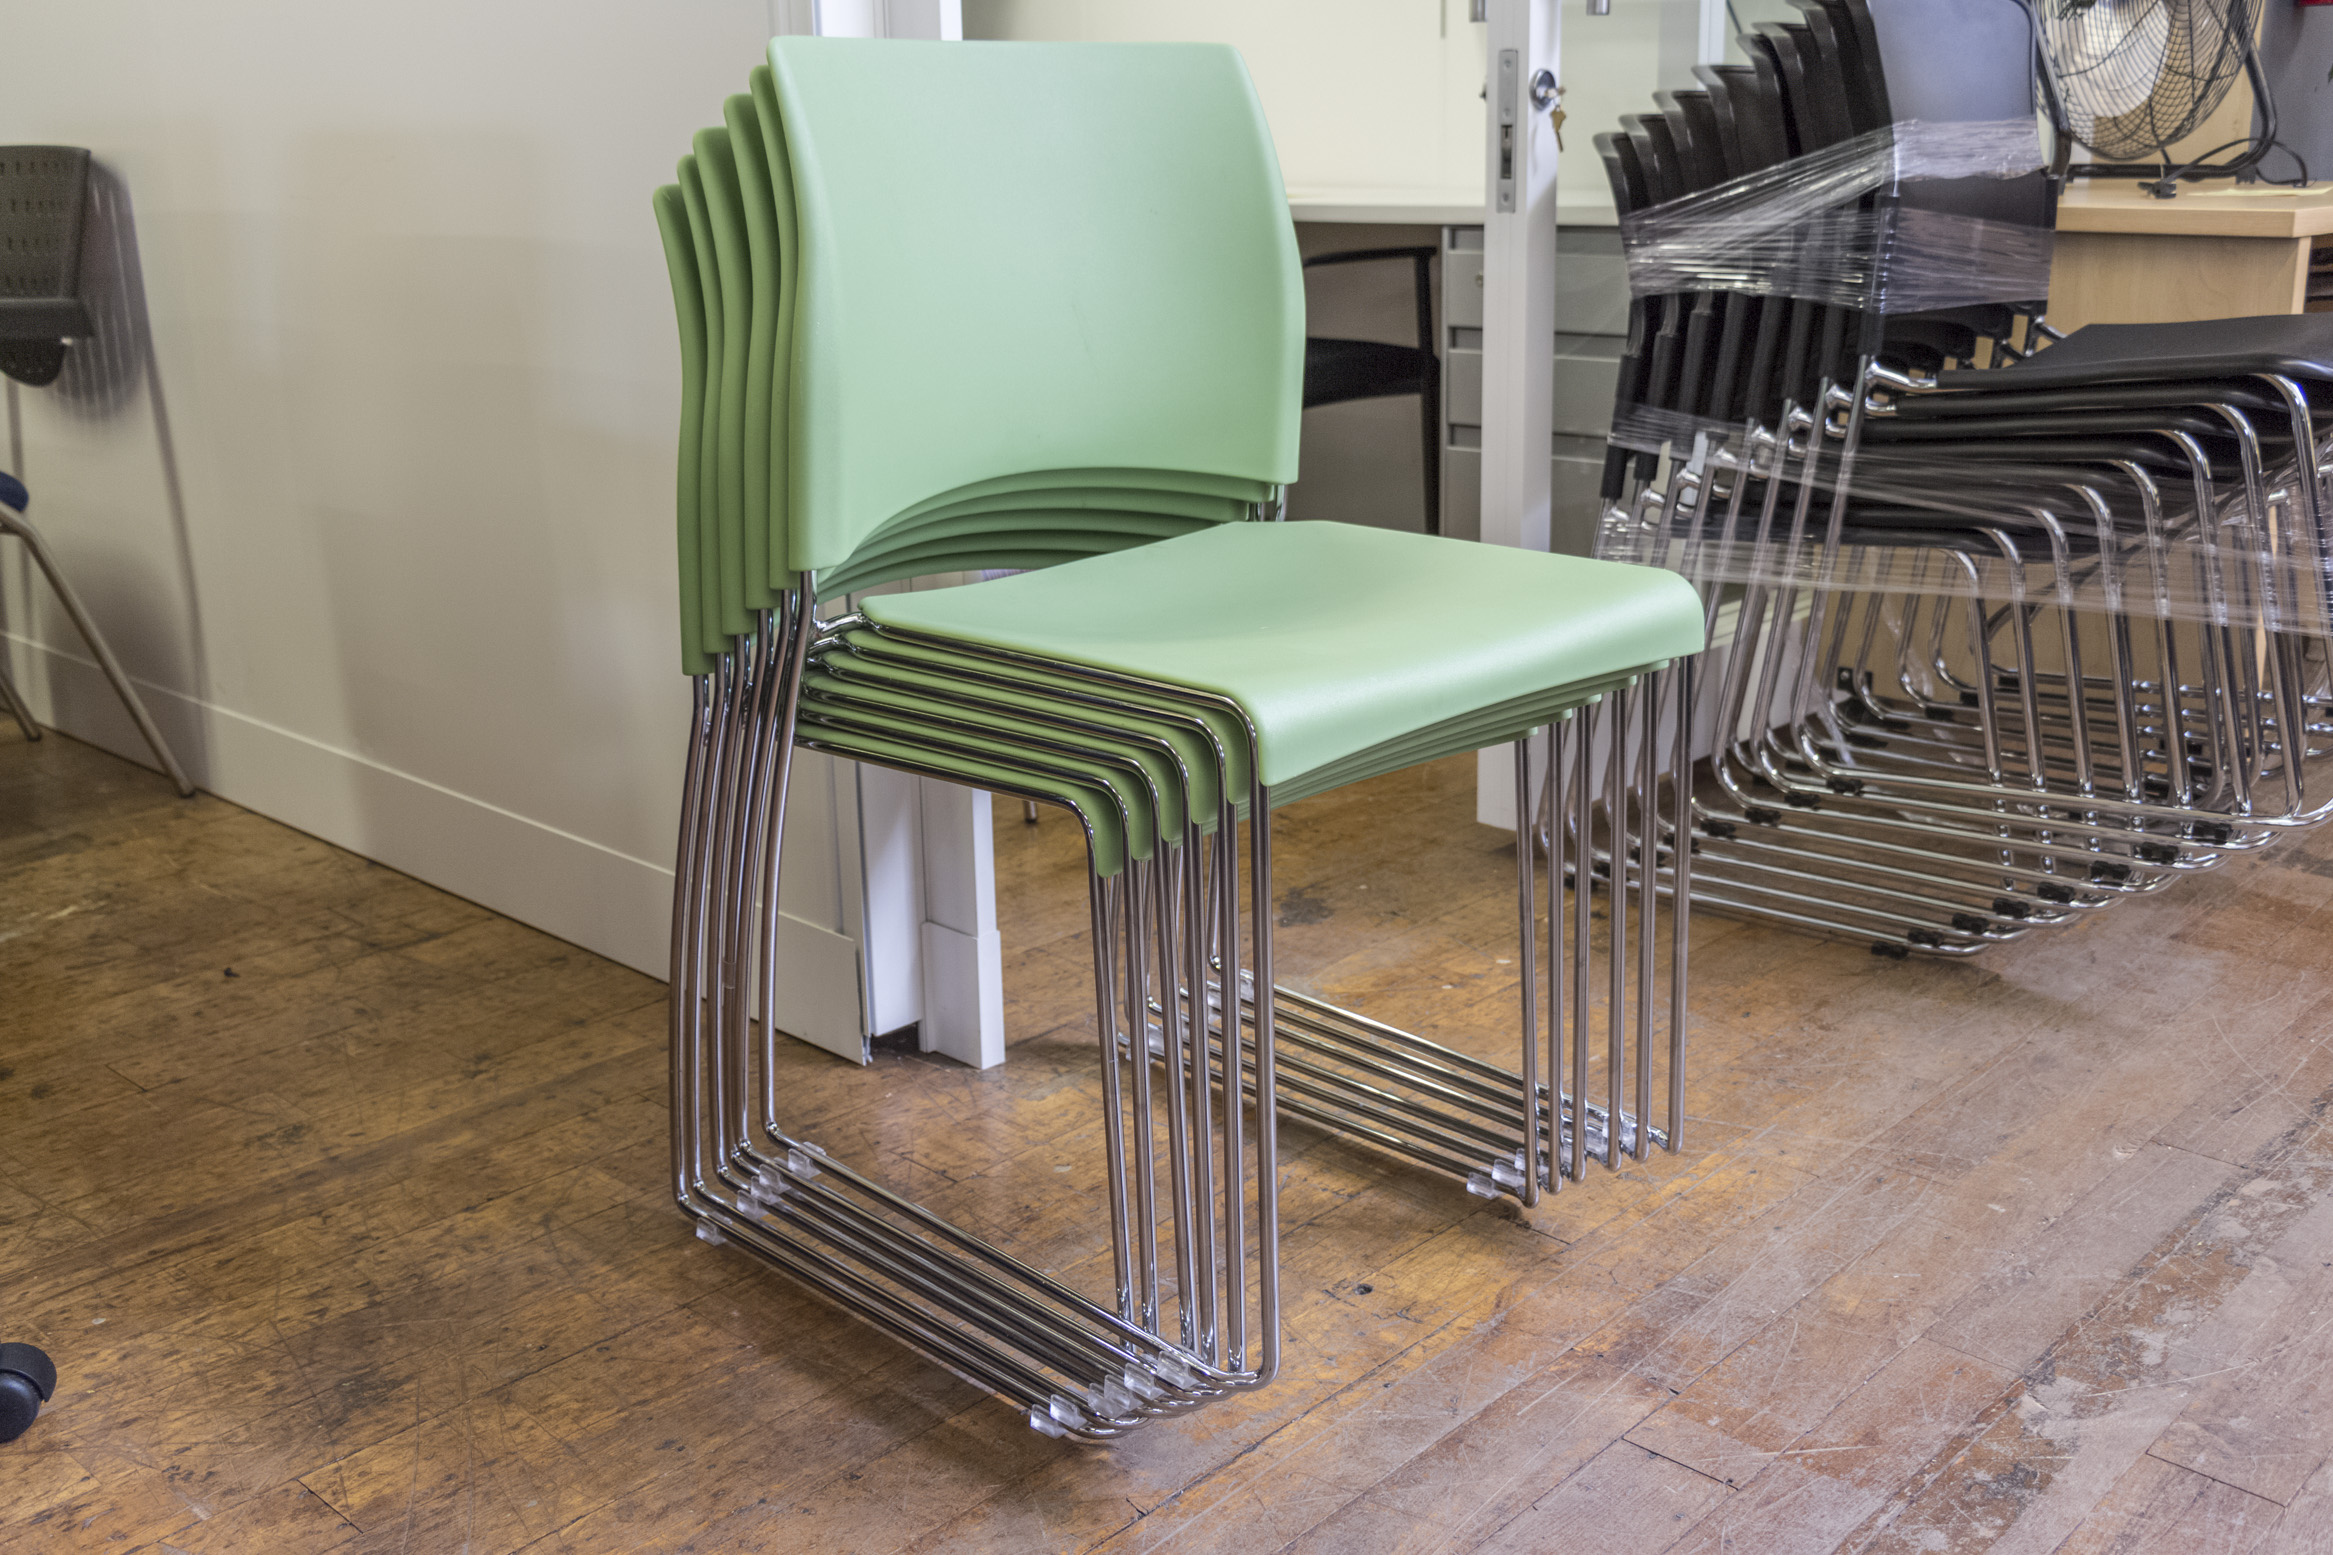 allsteel nimble stacking chairs peartree office furniture